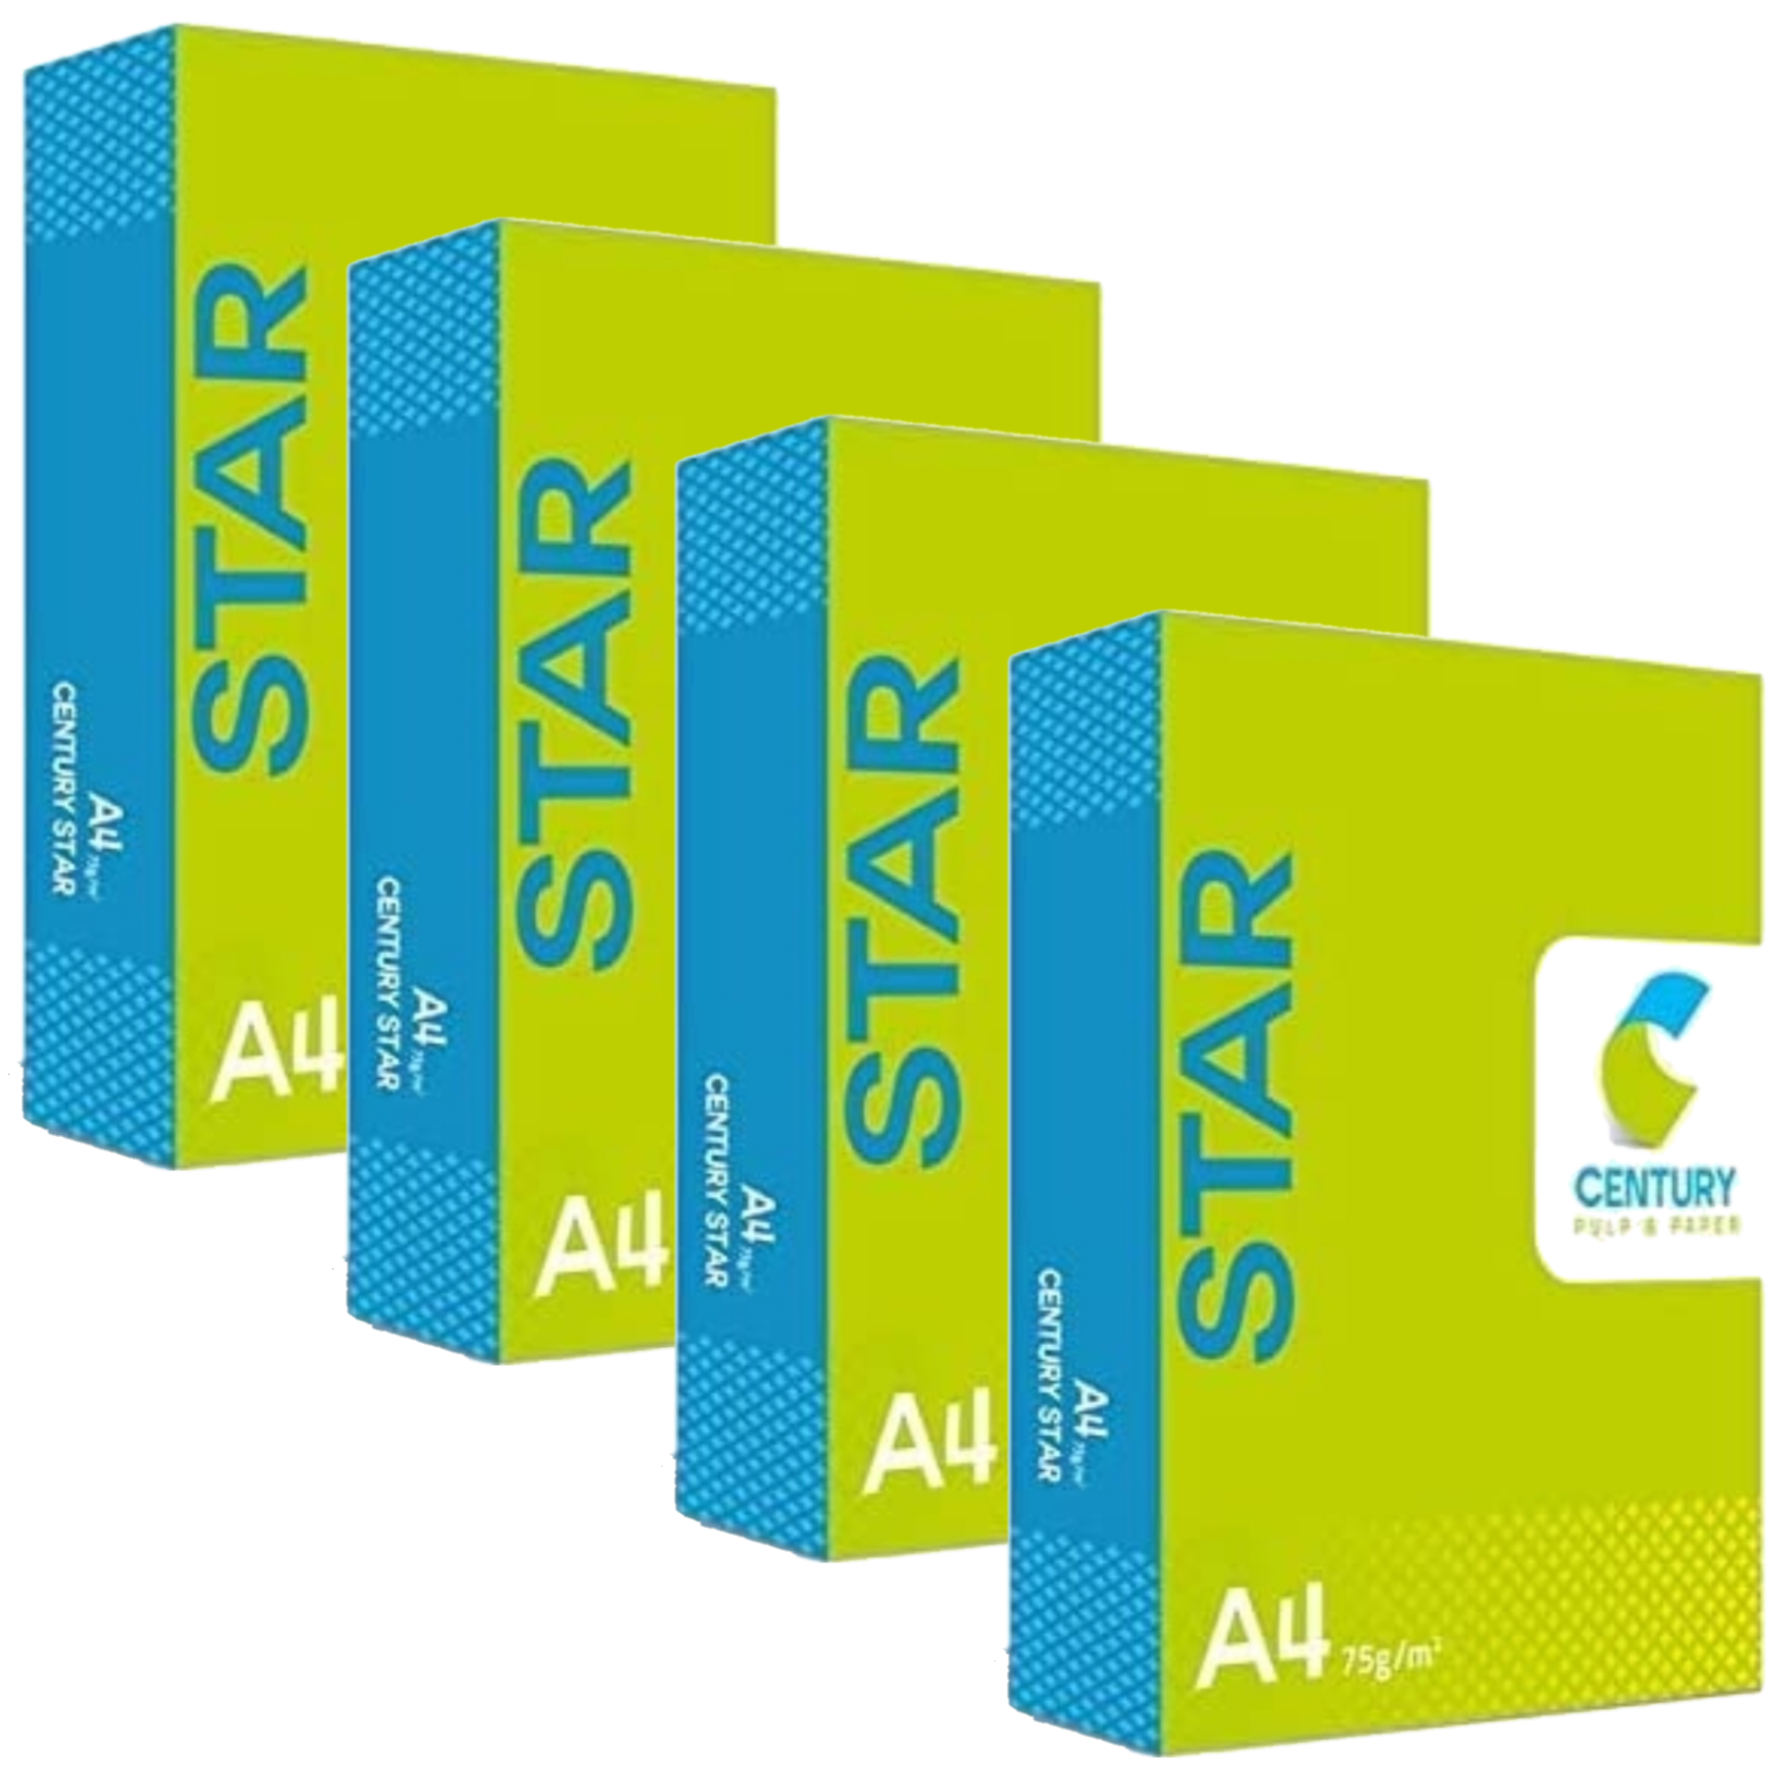 Century Star Copier  Paper A4 Size Paper 75 GSM 500 Sheet Pack of 4